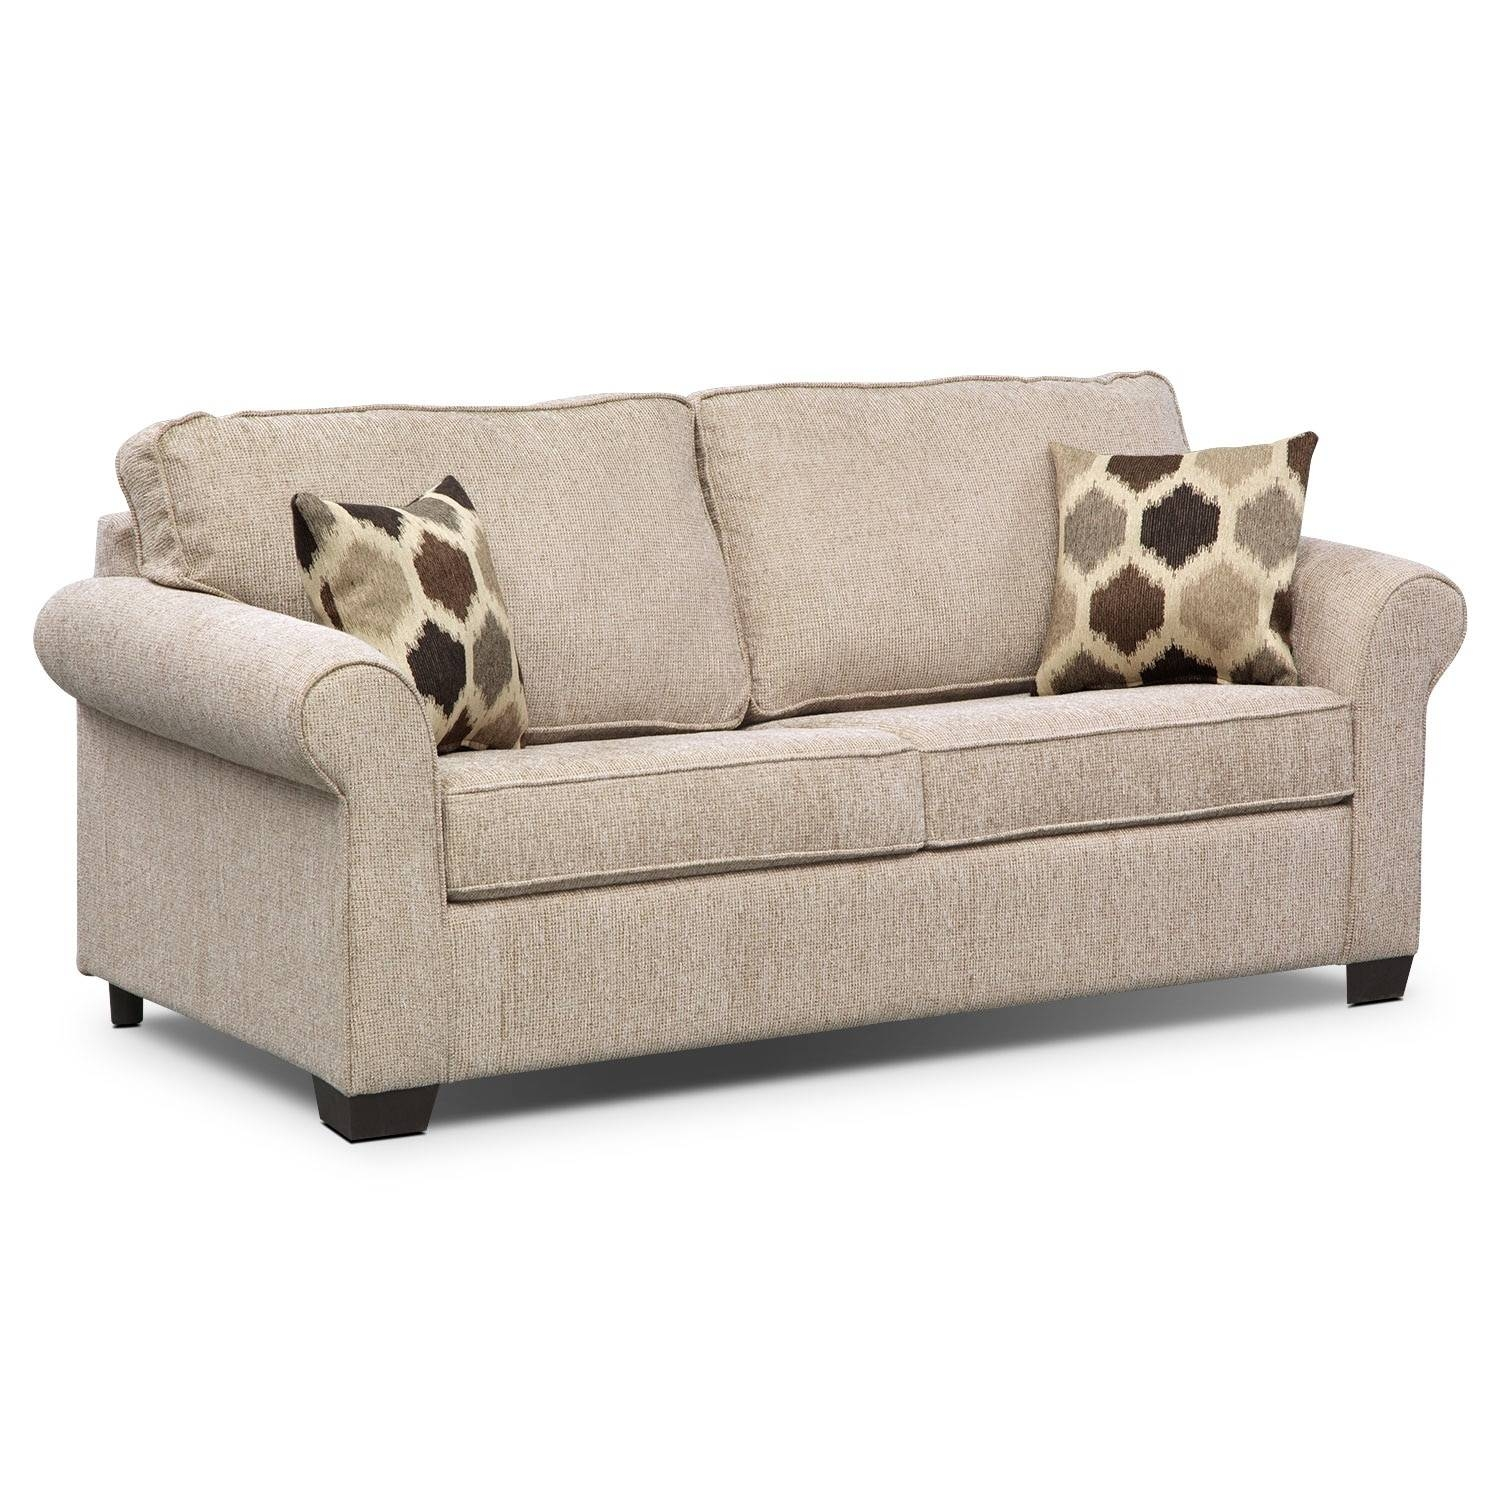 Sleeper Sofas | Value City Furniture | Value City Furniture with regard to Full Size Sofa Sleepers (Image 15 of 30)